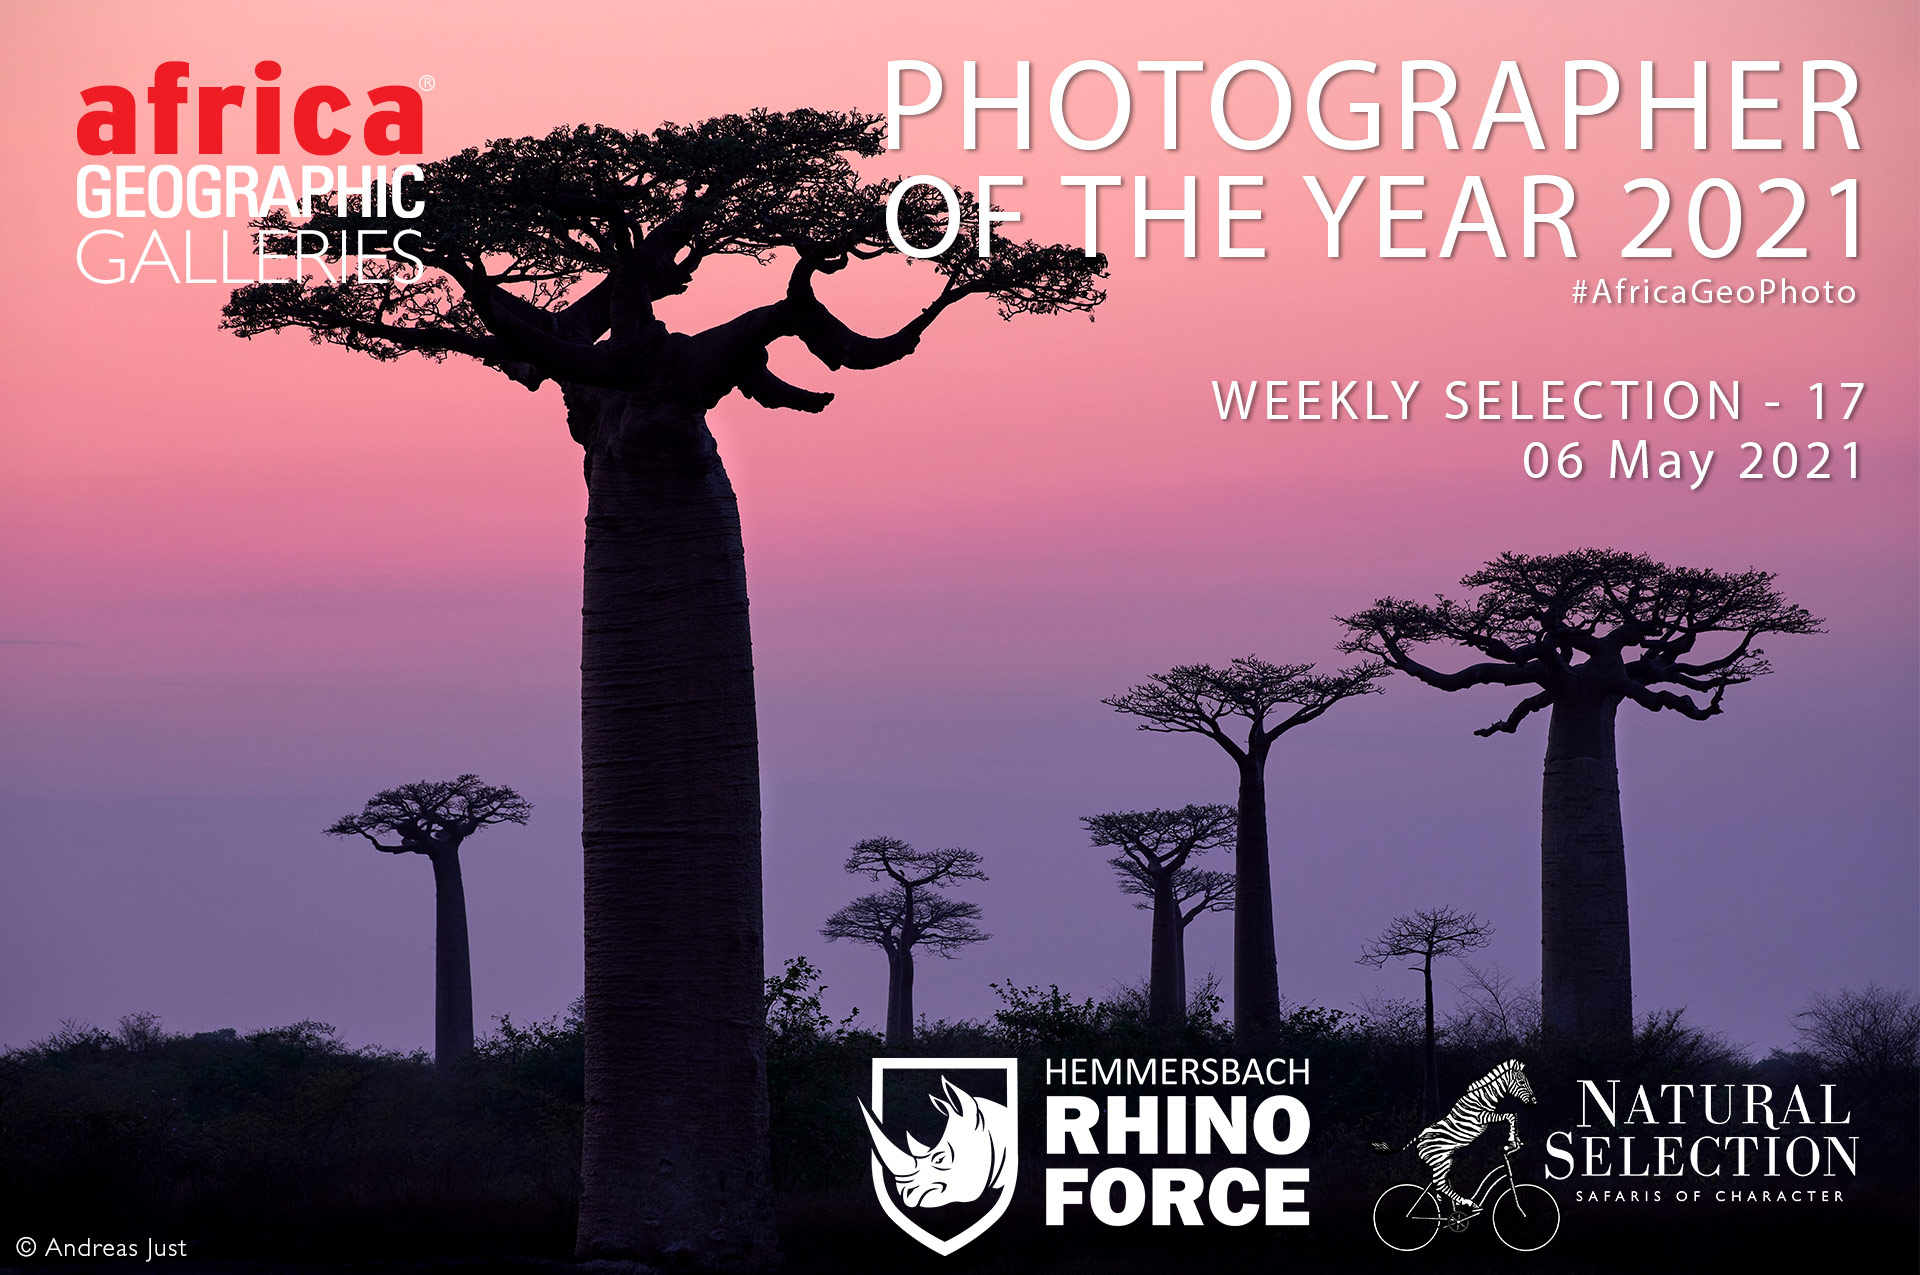 Photographer of the Year 2021 Weekly Selection: Week 17 - Africa Geographic